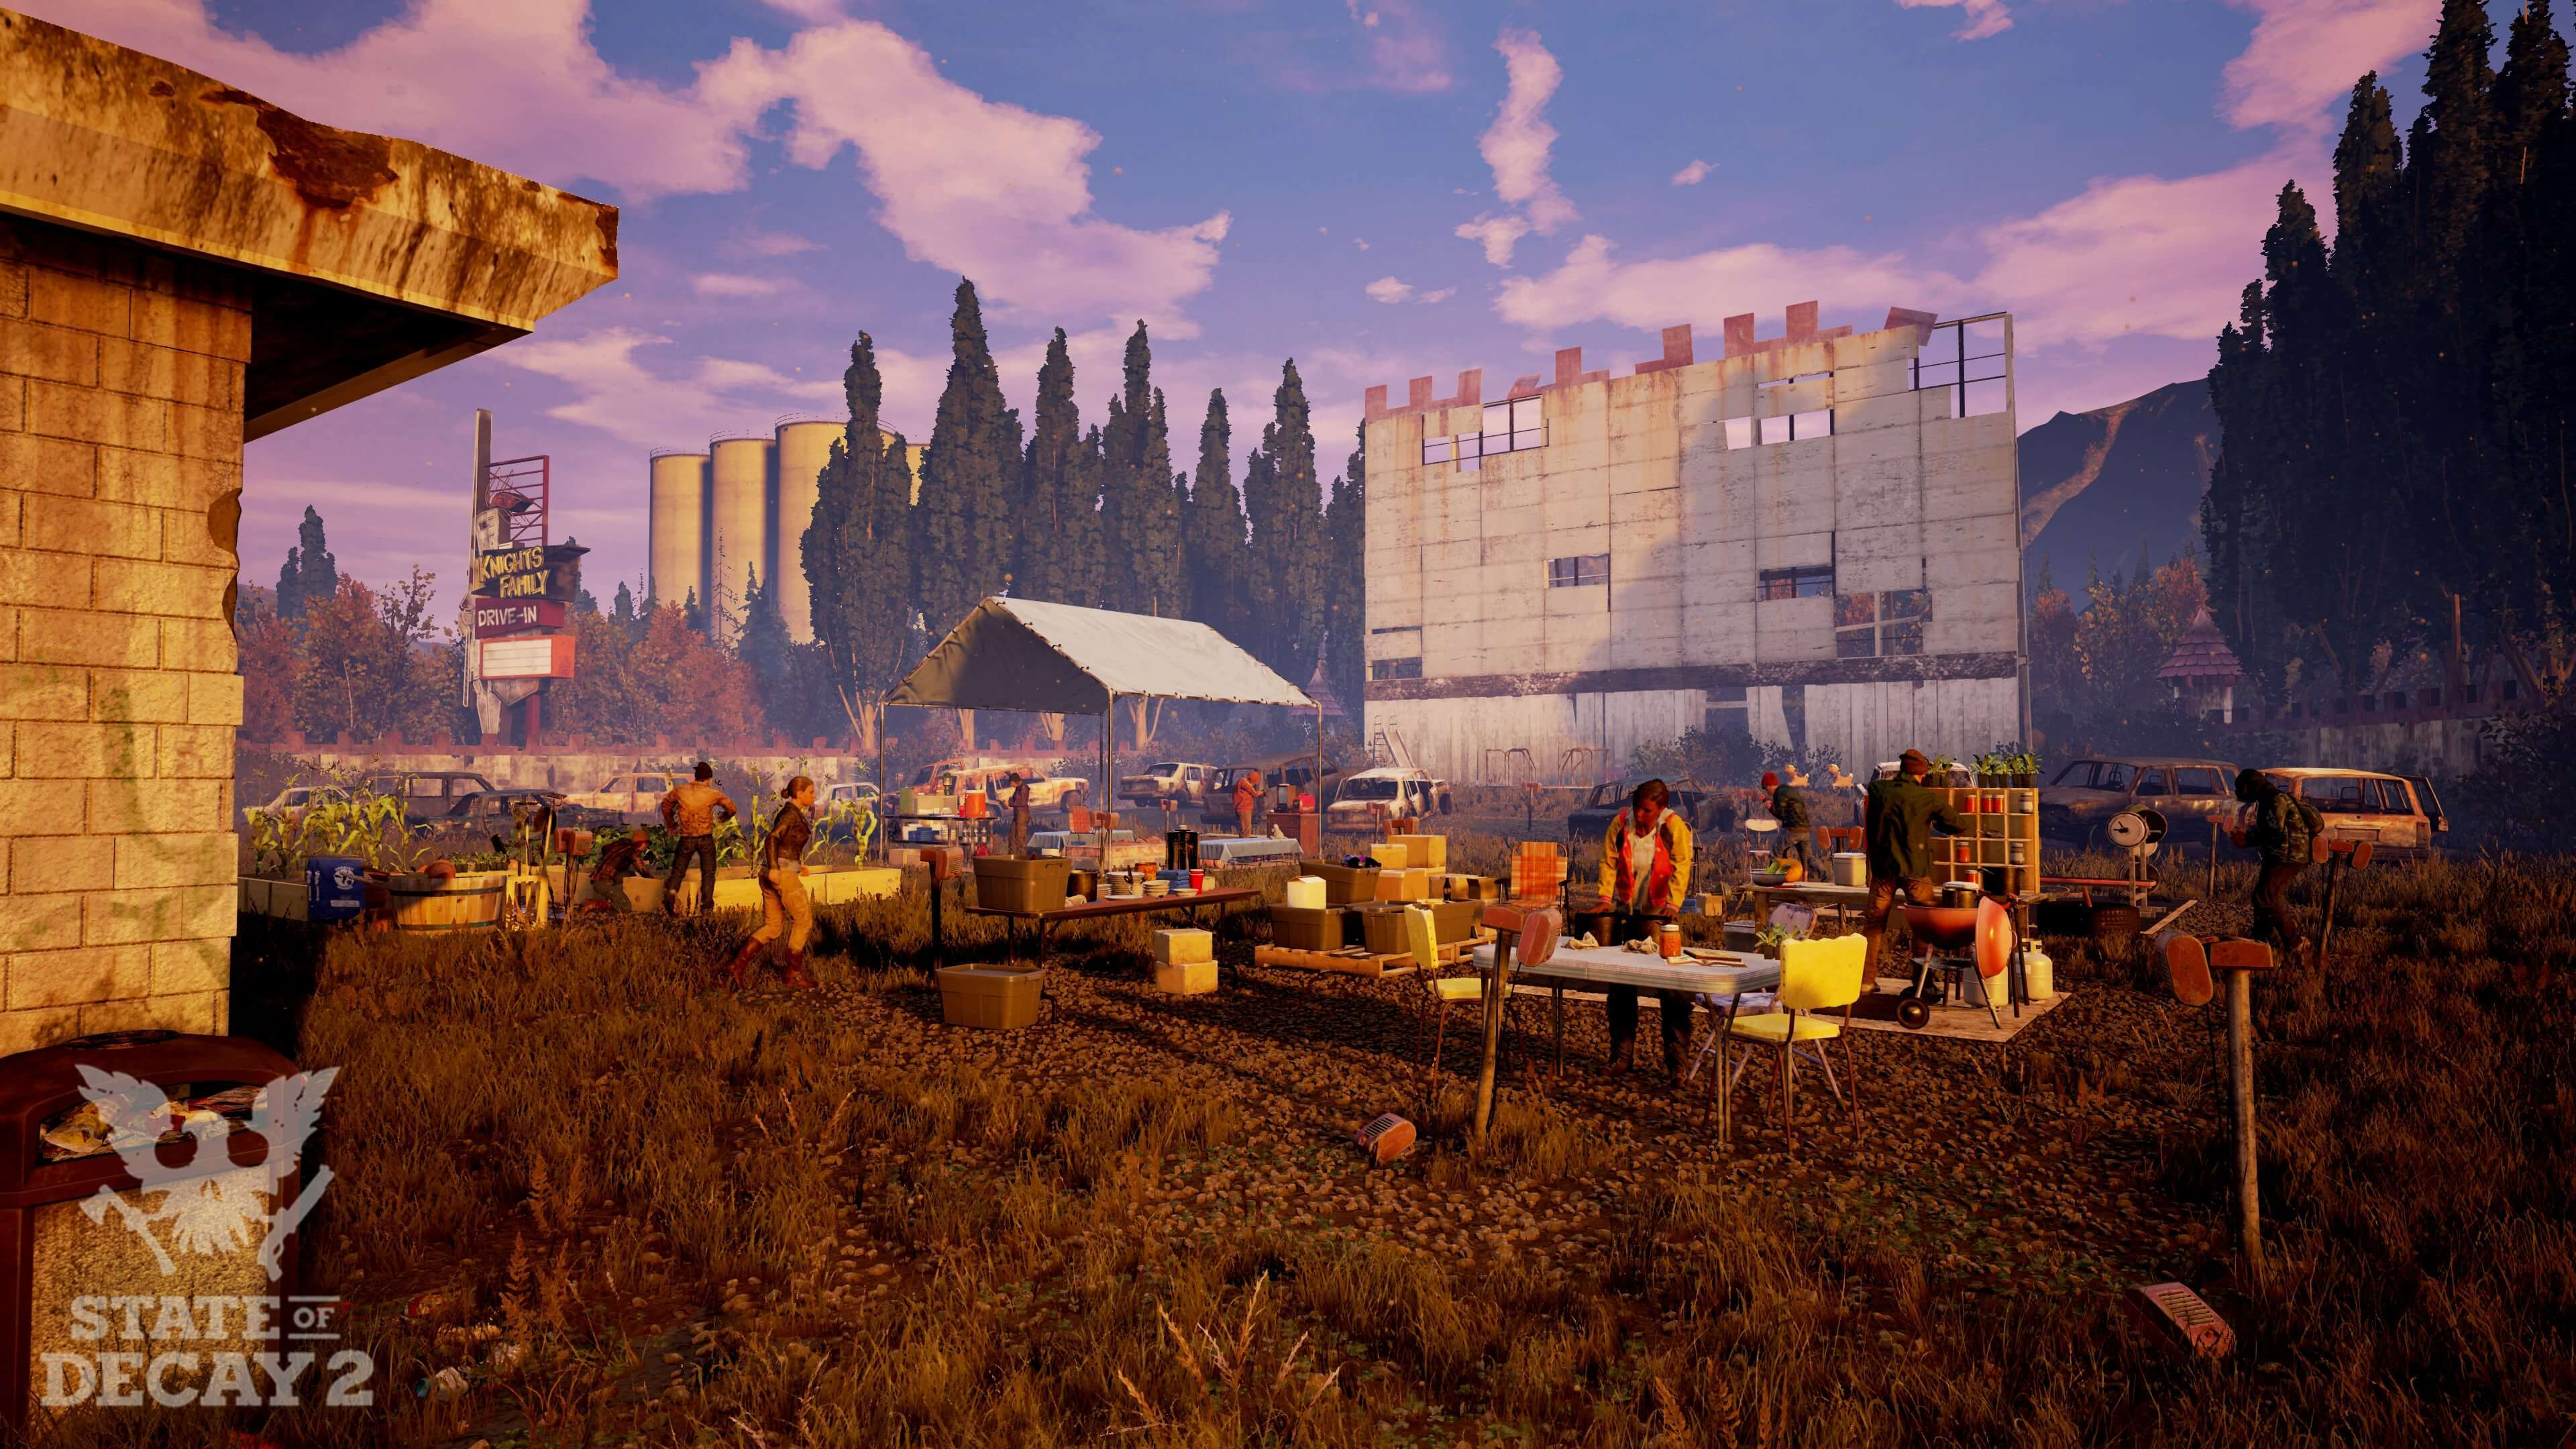 State of Decay 2: Use This Exploit To Earn Unlimited